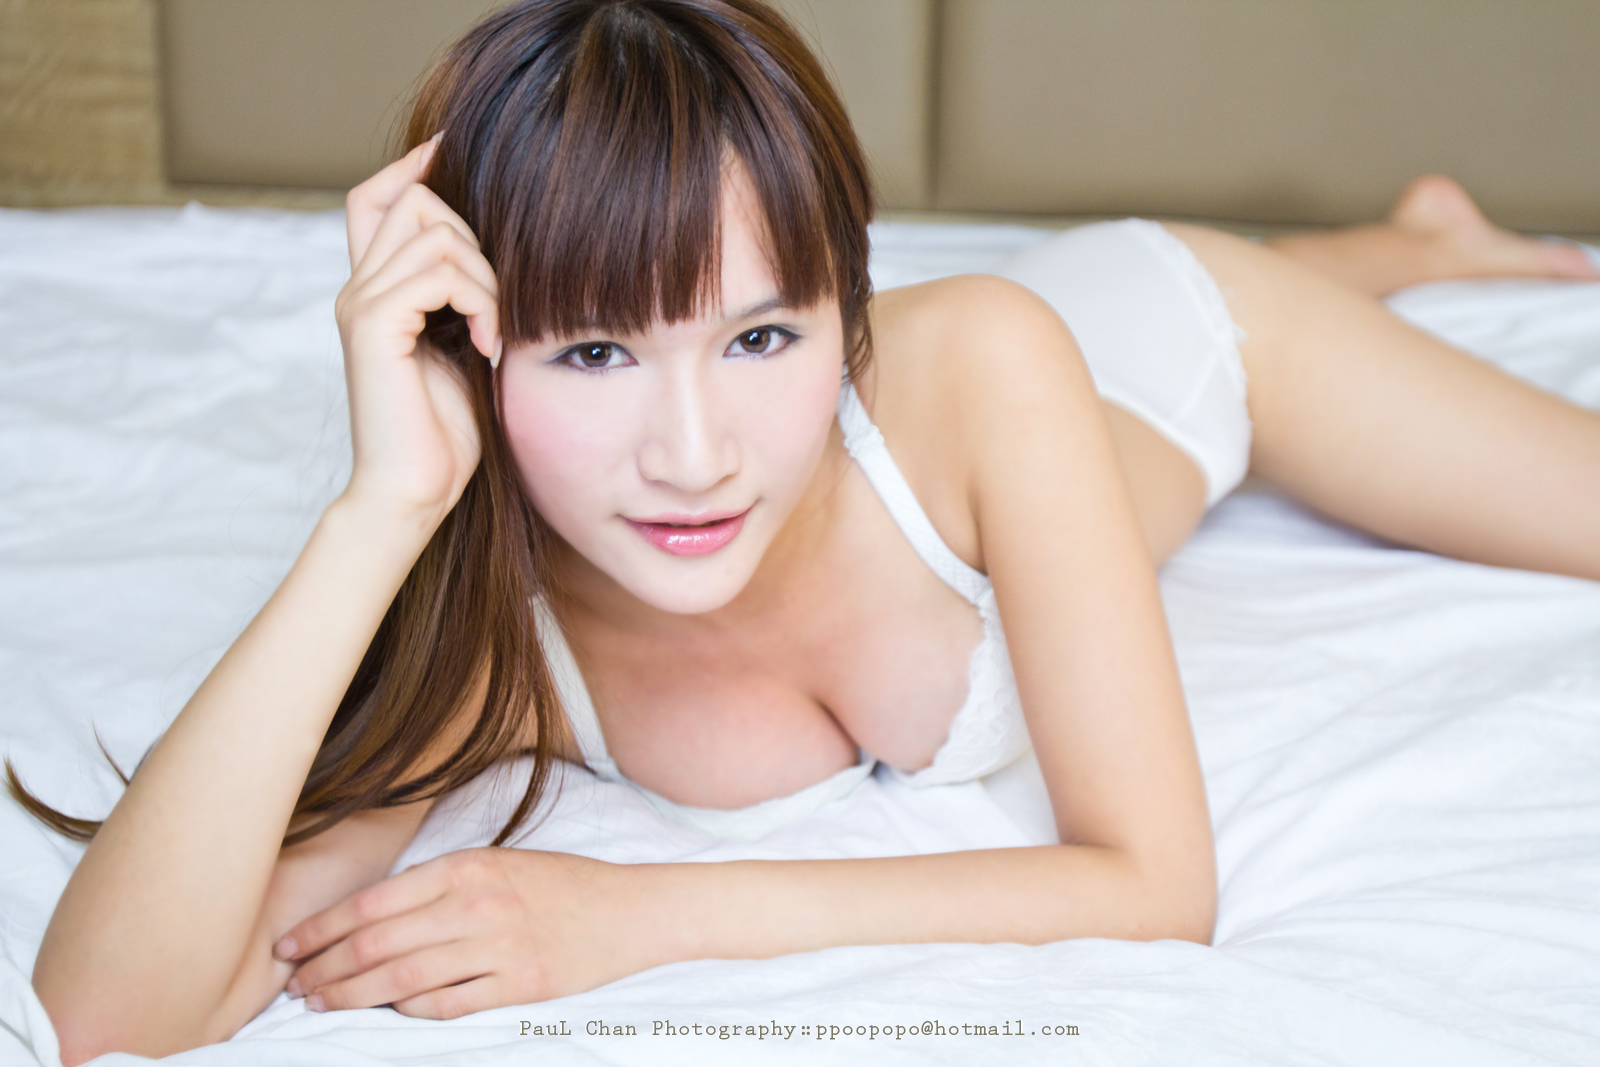 Xiao Qiao Pictures News Information From The Web